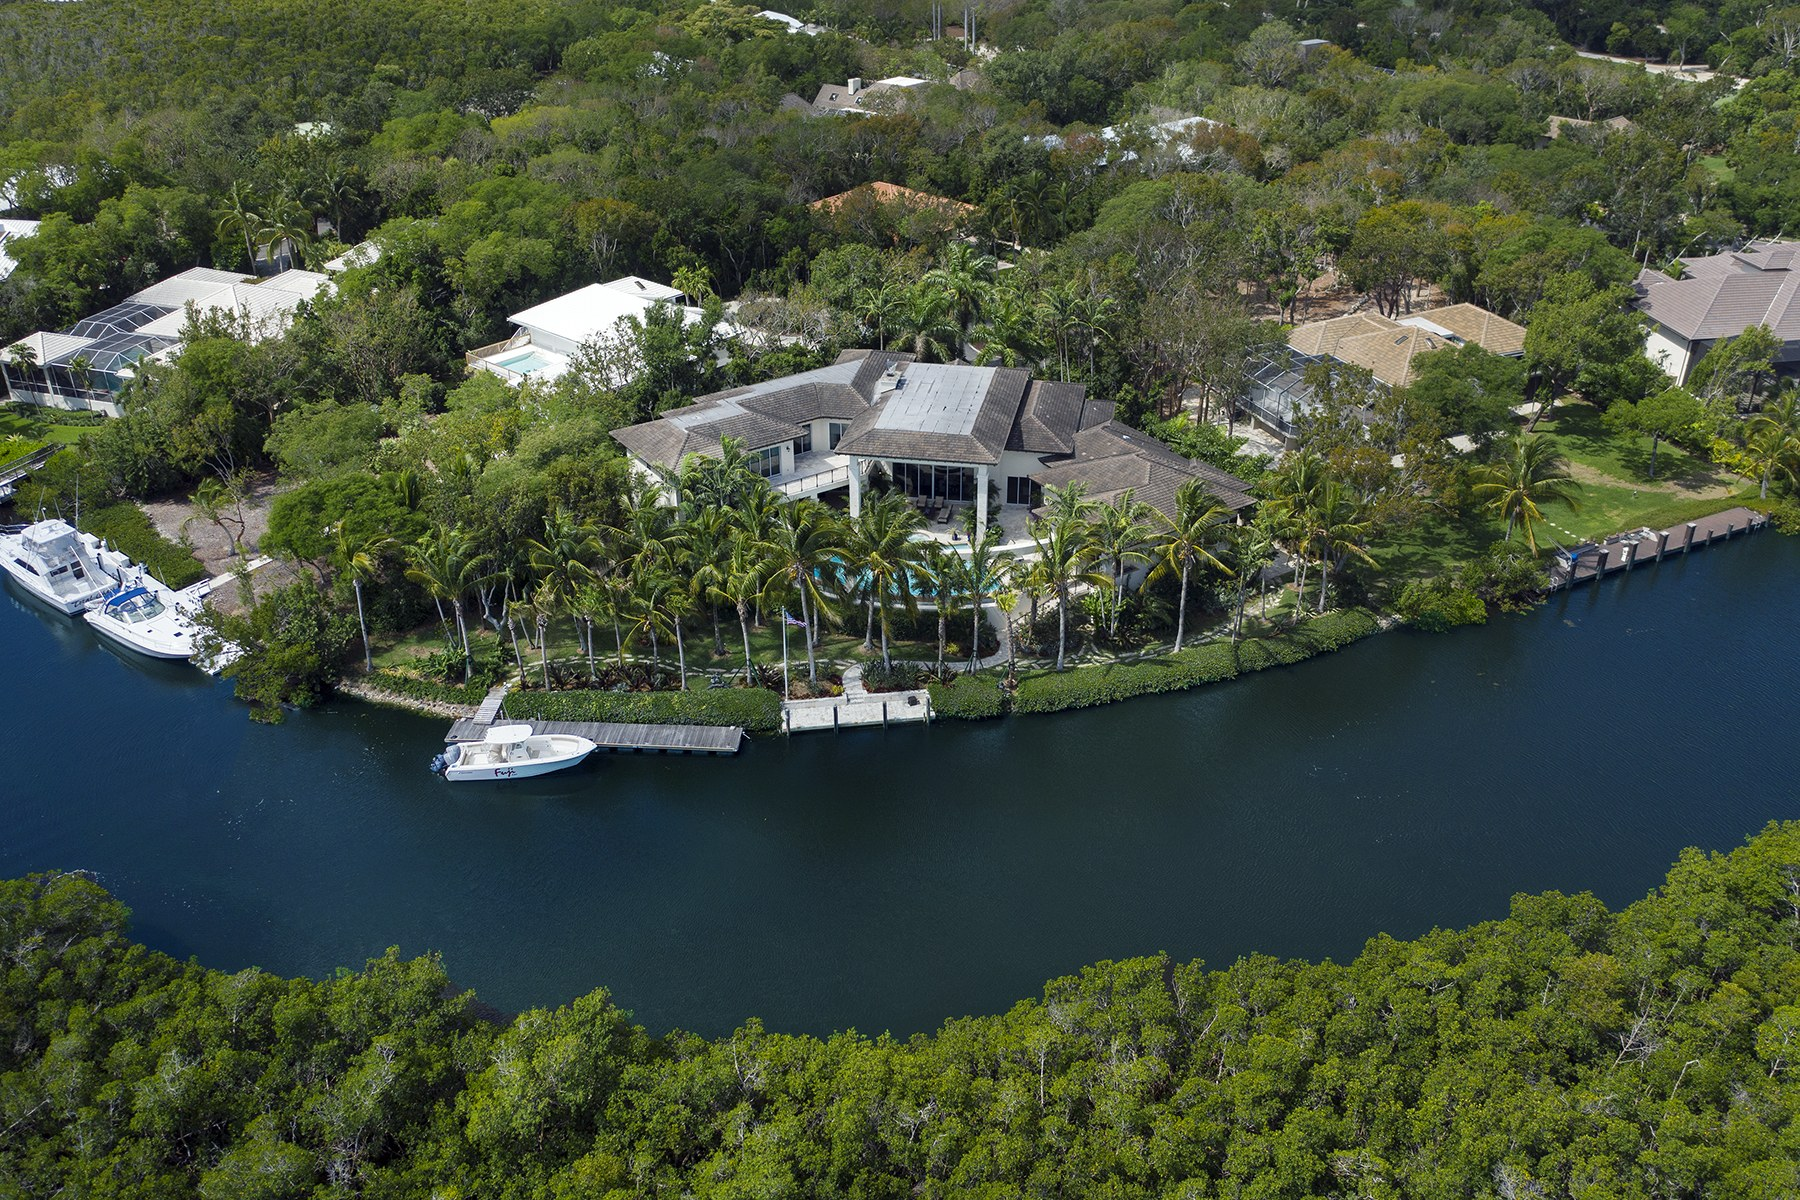 Additional photo for property listing at 24 Dispatch Creek Court, Key Largo, FL 24 Dispatch Creek Court Key Largo, Florida 33037 United States